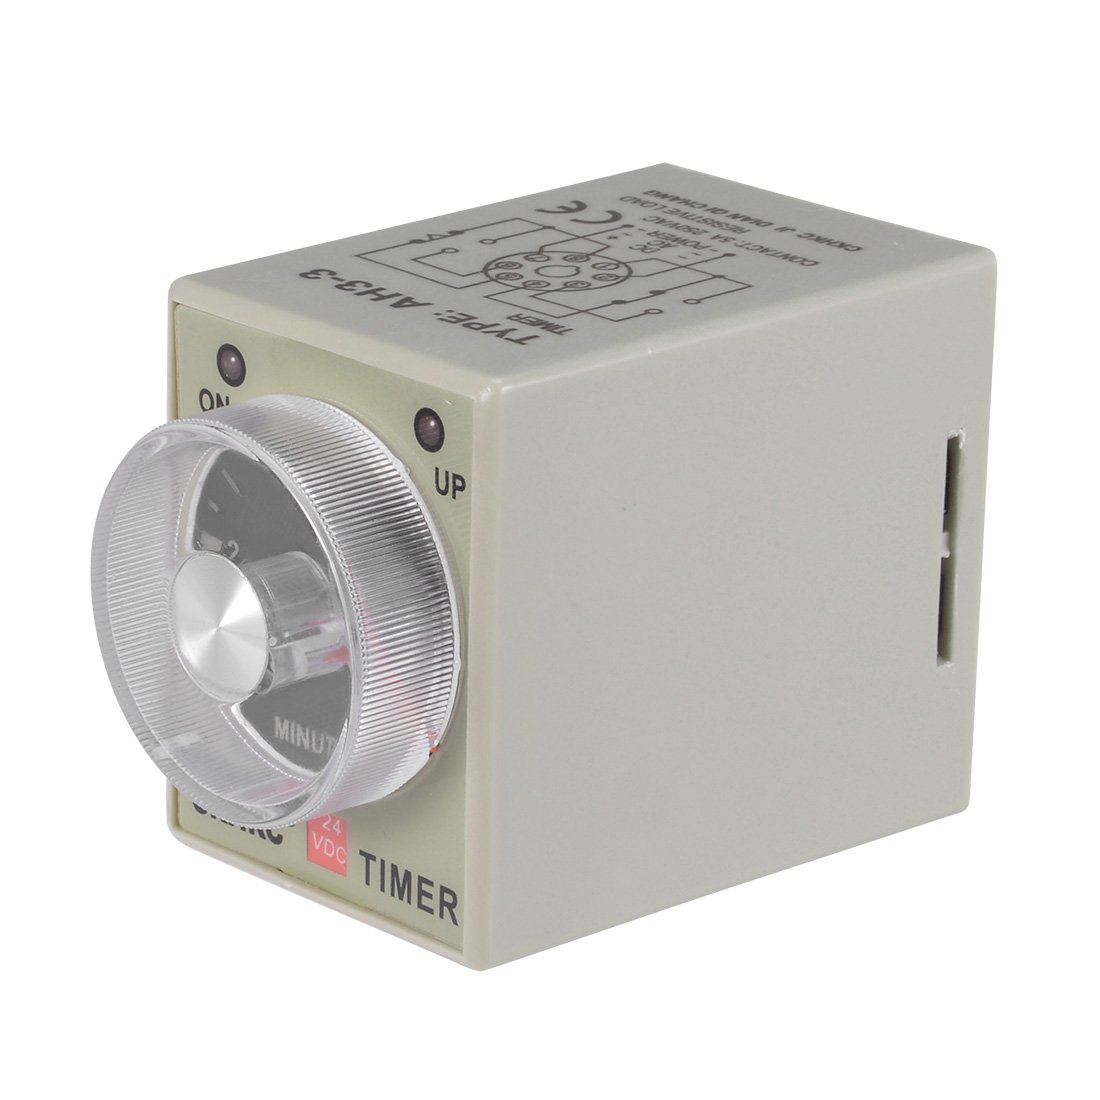 uxcell DC24V 30S 8 Terminals Range Adjustable Delay Timer Time Relay AH3-3 with Base a18031500ux0187